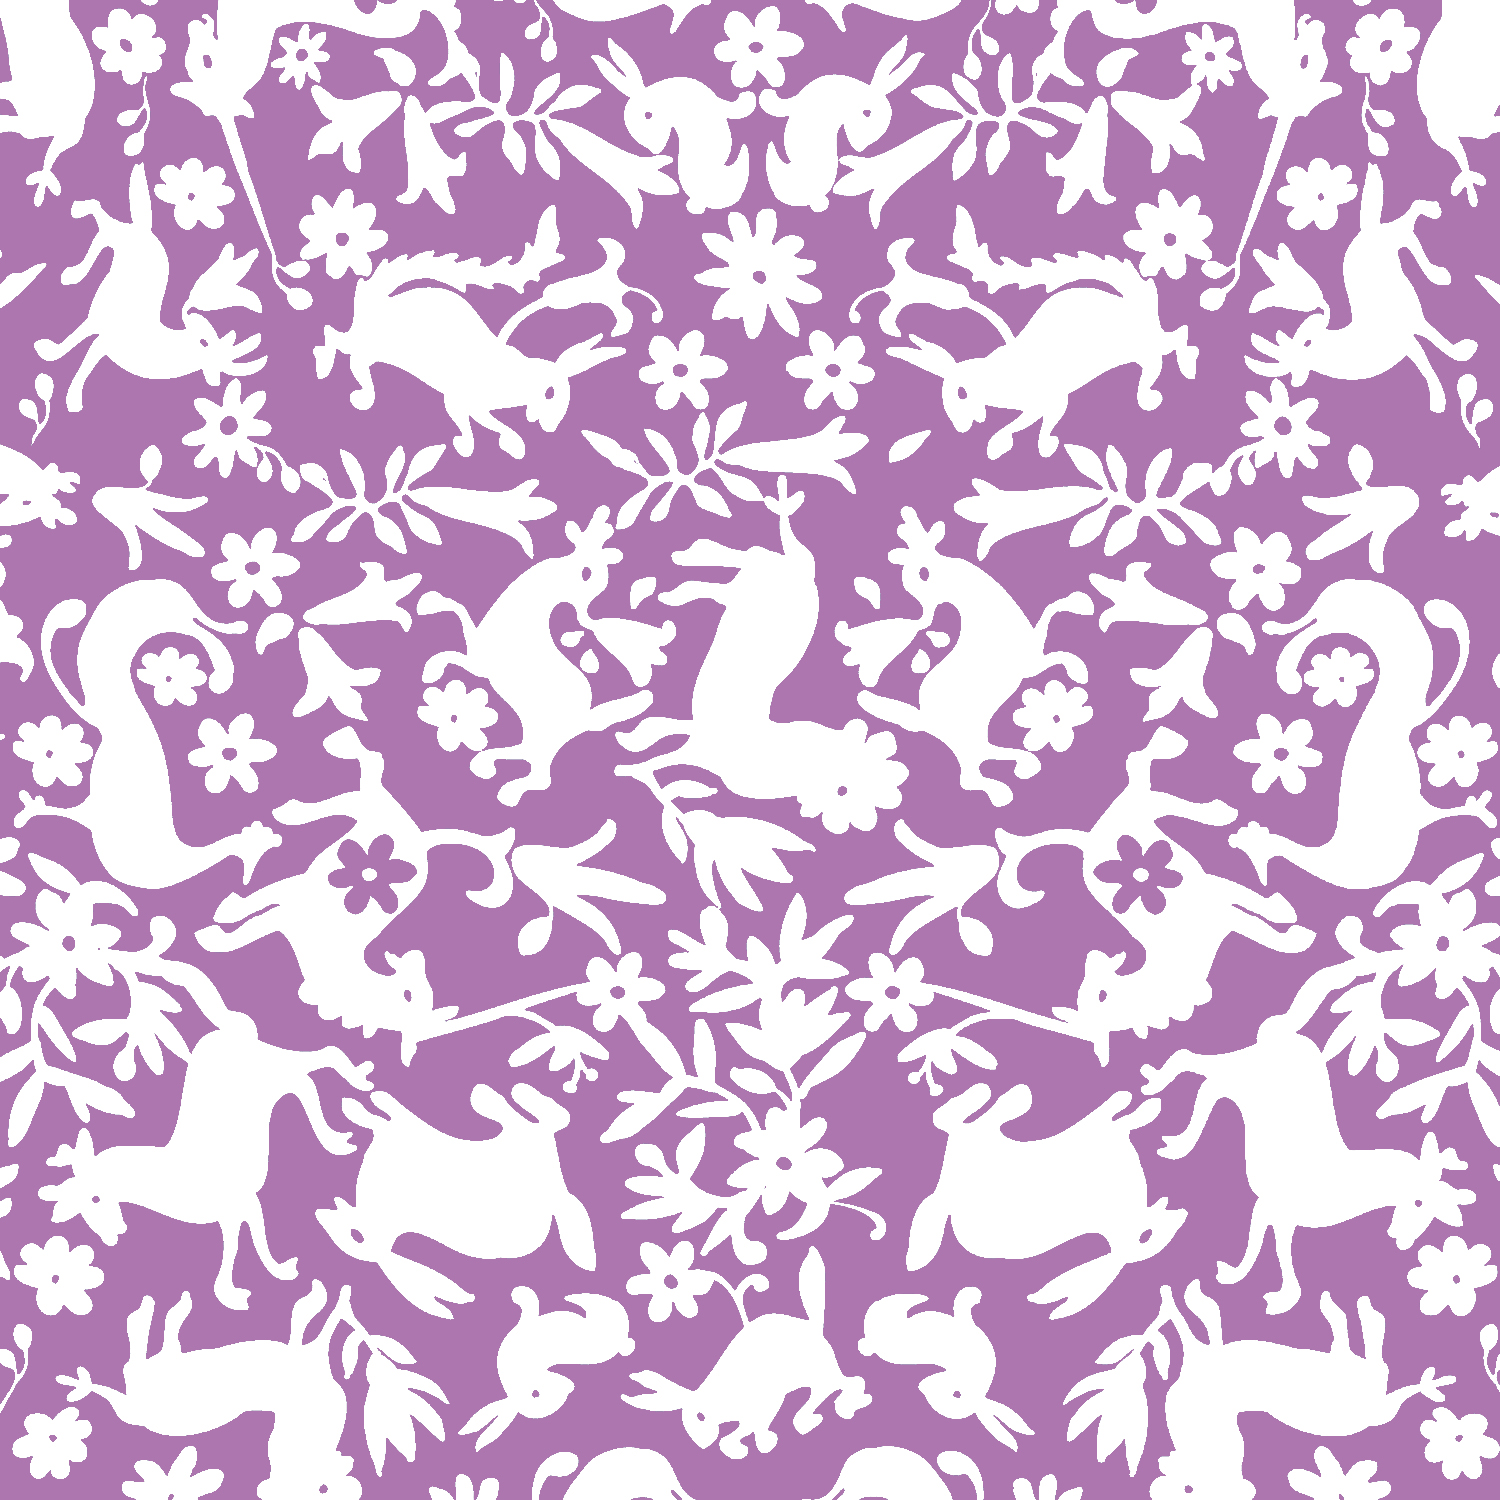 cw unicornio-repeat meadow mauve.jpg